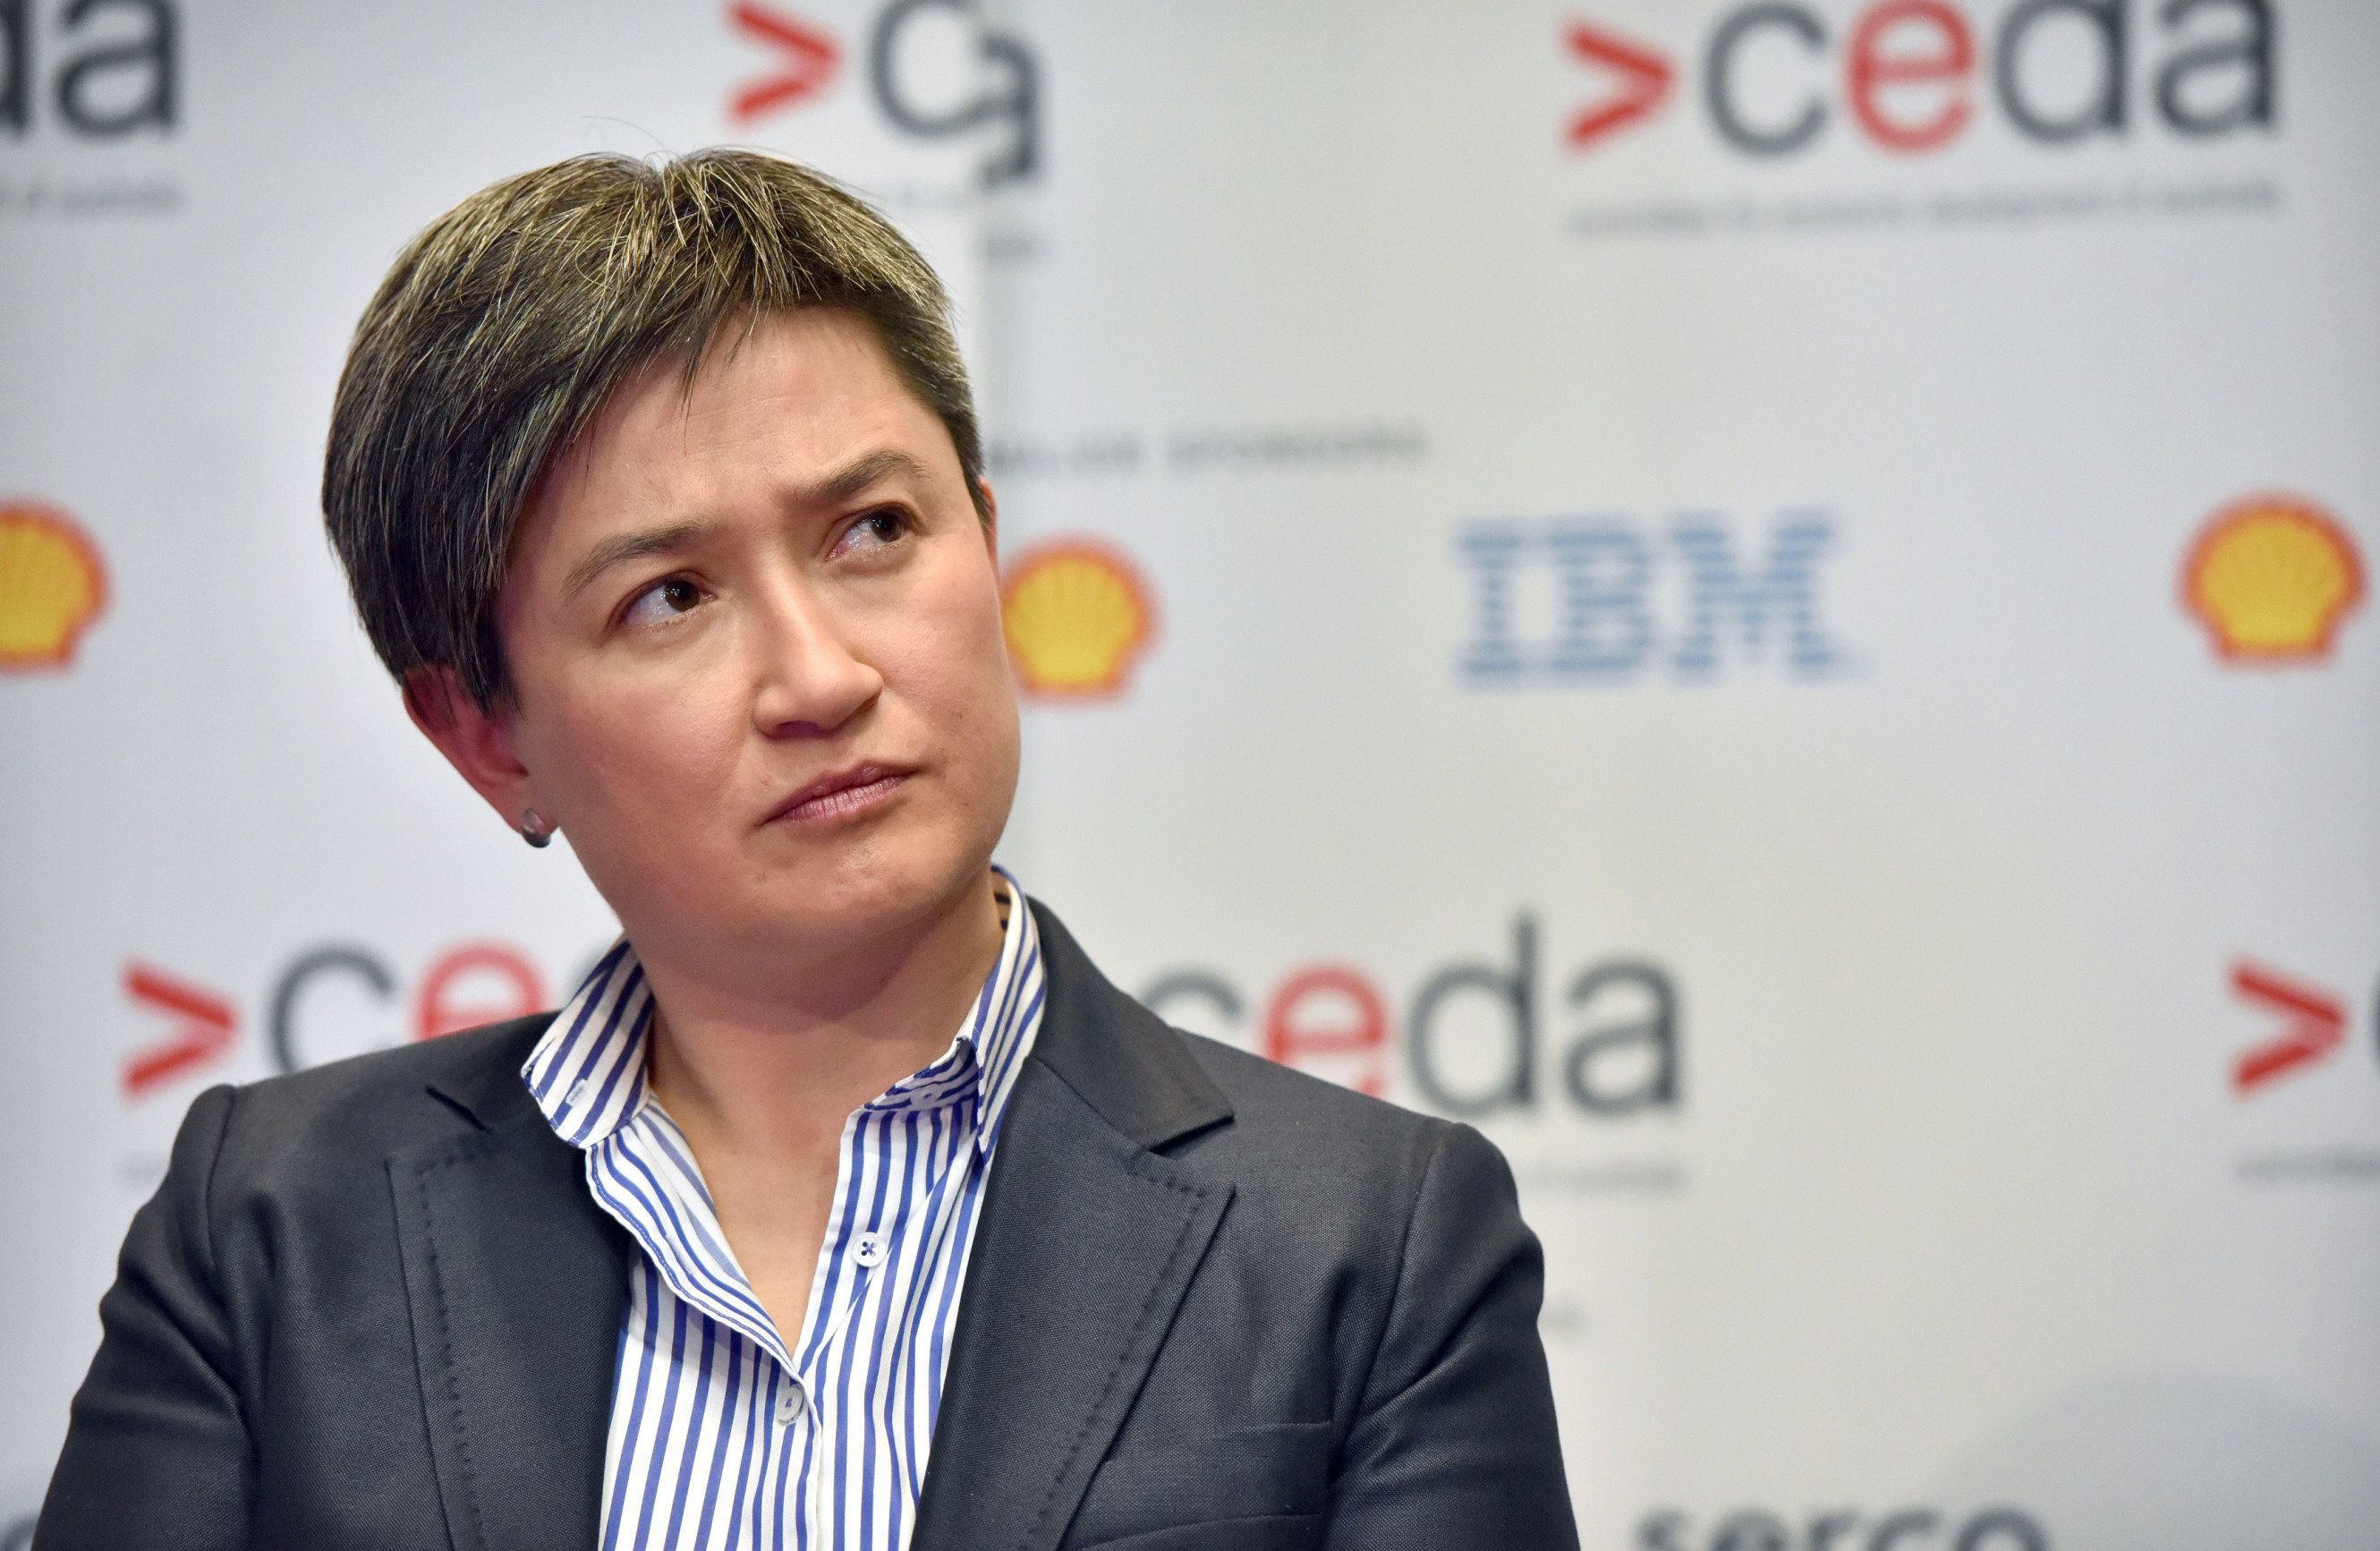 Penny Wong, professional badass and Leader of the Opposition of the Senate in Australia.